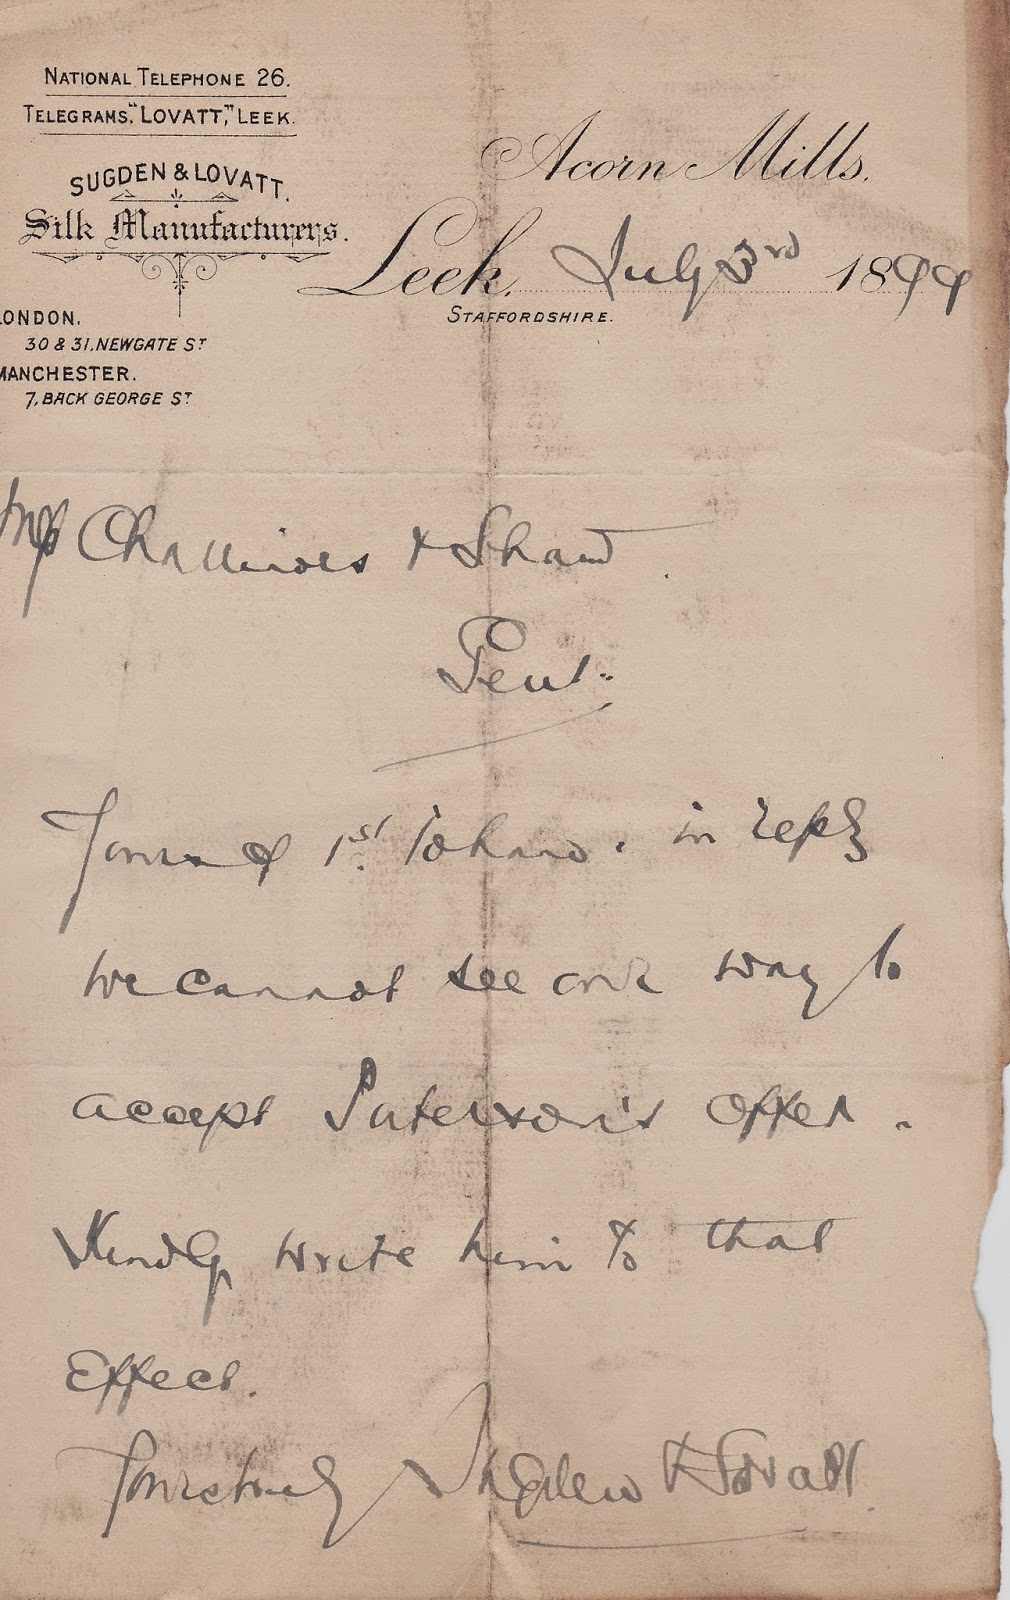 Handwritten Letter to Solicitors, Sugden & Lovatt, Leek, Staffordshire, about Paterson, 3rd August 1899